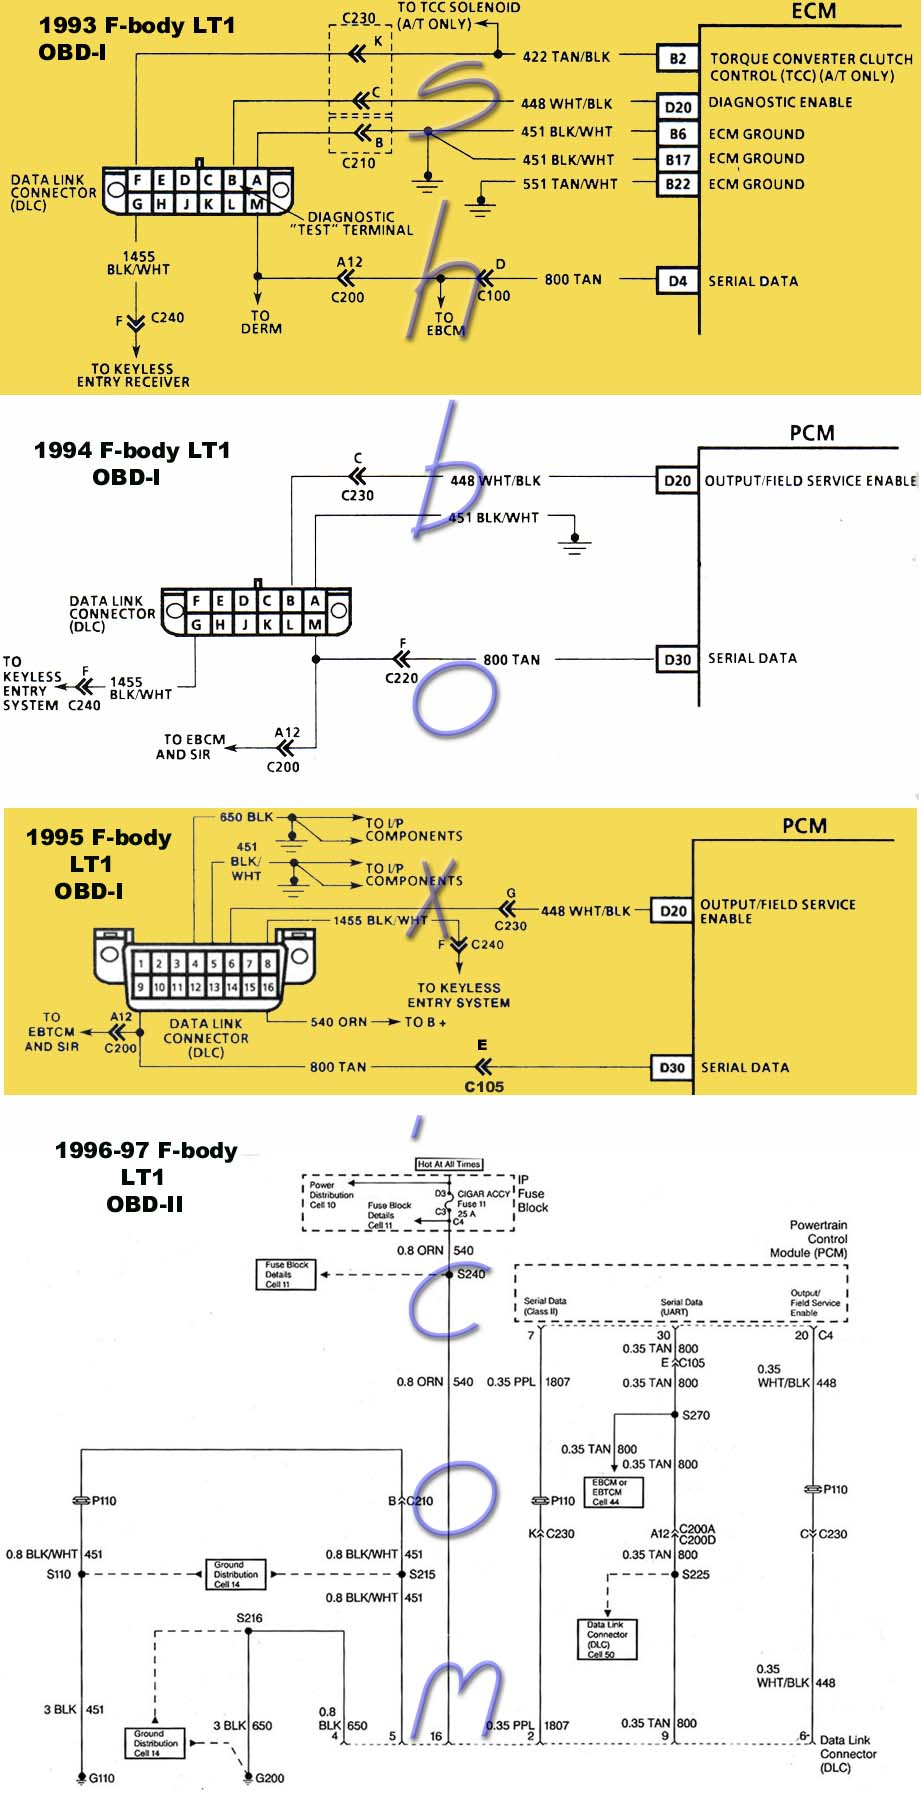 obd wiring diagram object class of air and reservation system 4th gen lt1 f body tech aids data link connector dlc all years